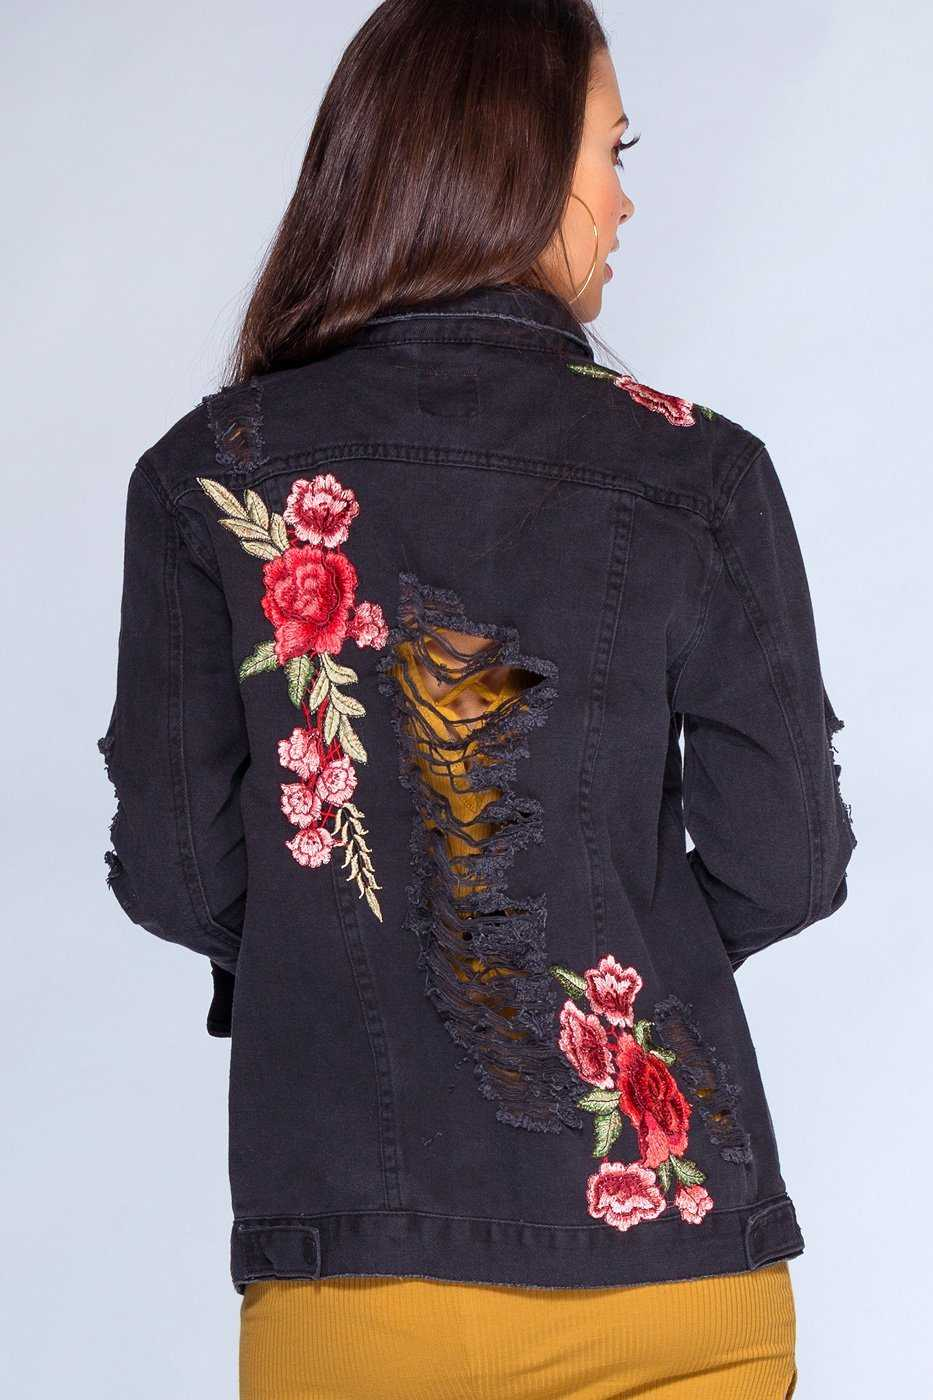 Jackets - Midnight Blossoms Distressed Denim Jacket